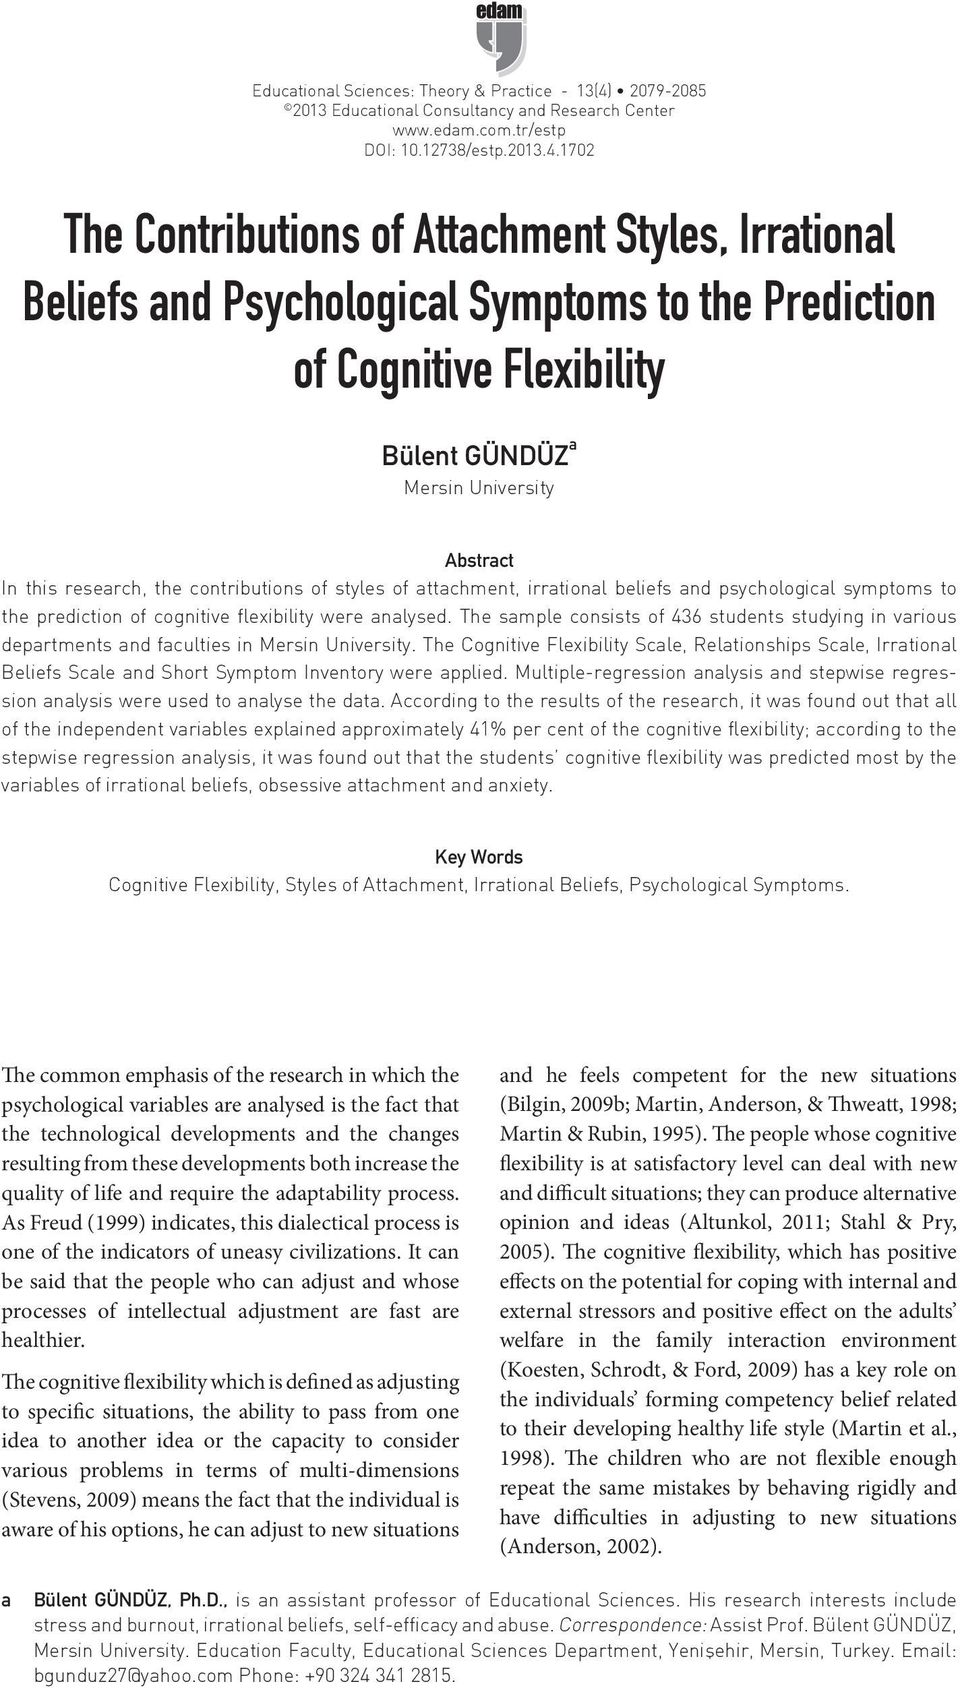 1702 The Contributions of Attachment Styles, Irrational Beliefs and Psychological Symptoms to the Prediction of Cognitive Flexibility Bülent GÜNDÜZ a Mersin University Abstract In this research, the